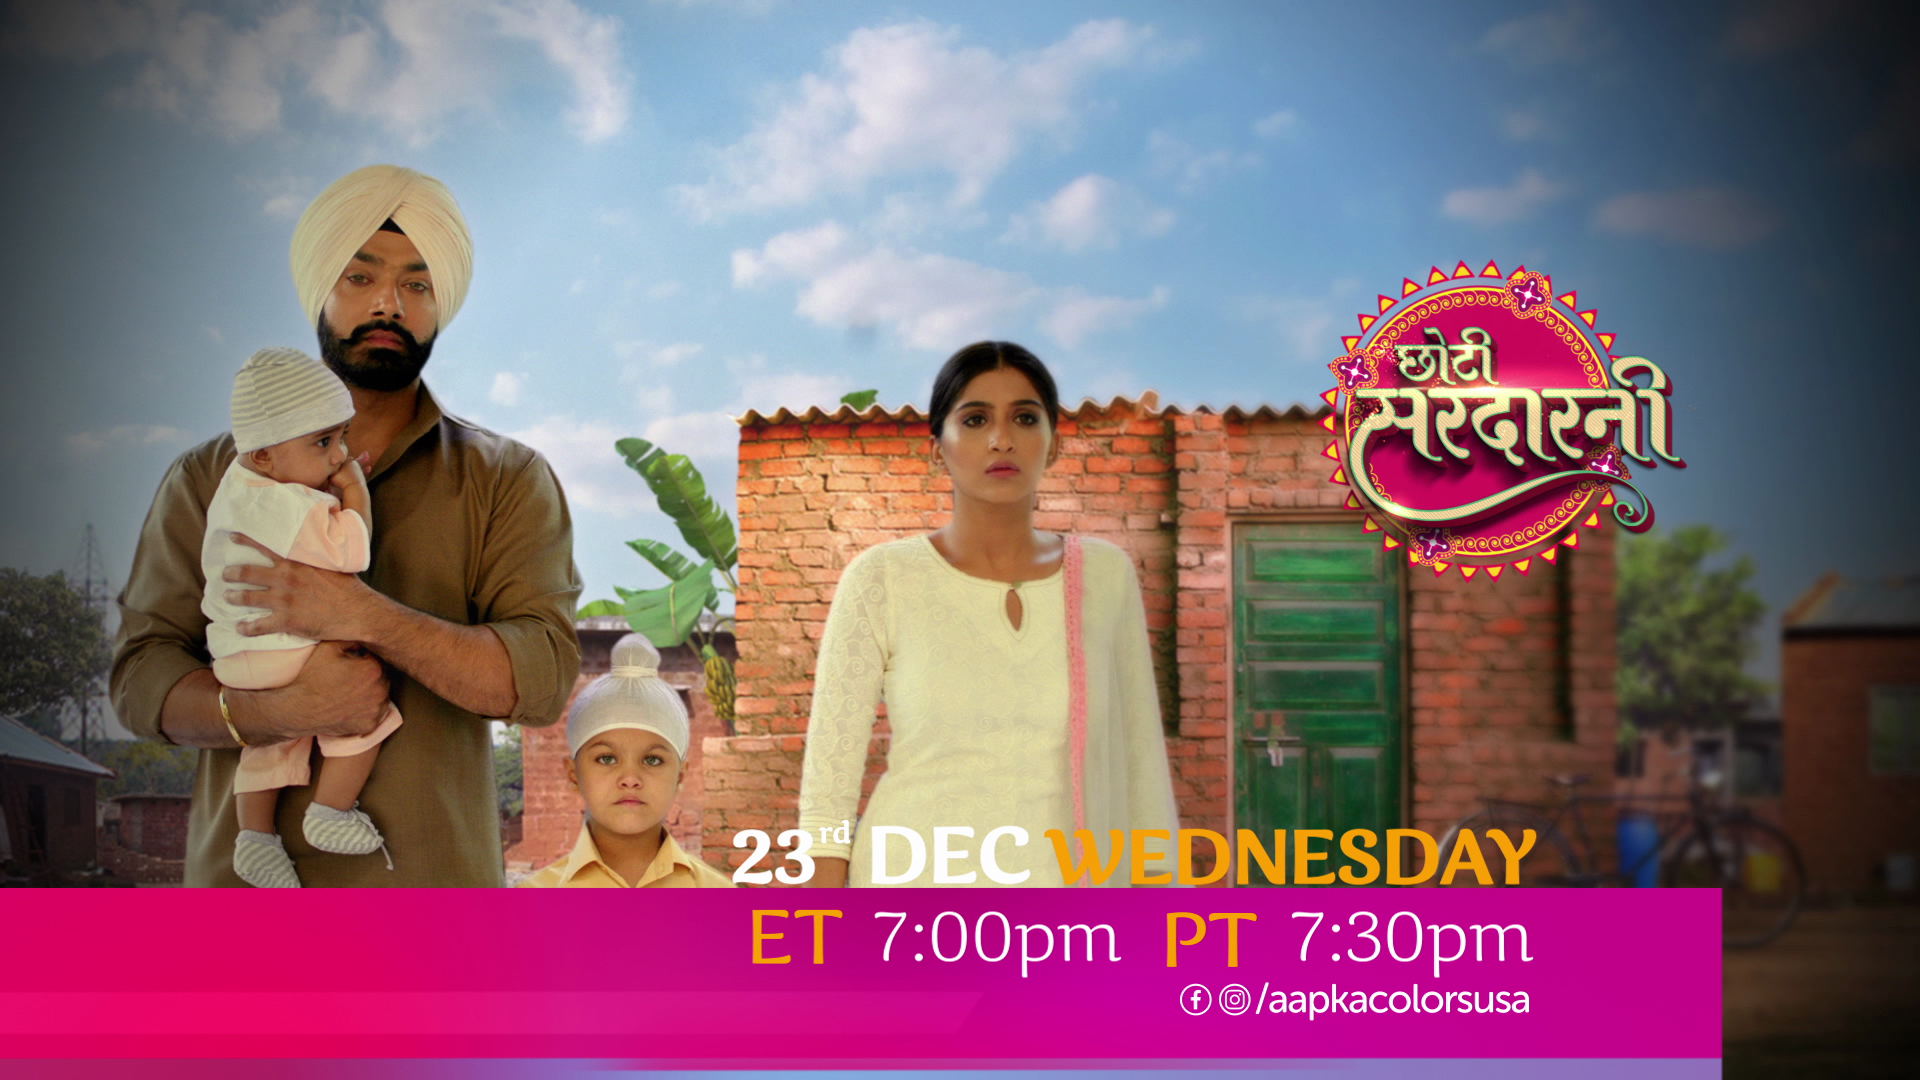 Watch Choti Sarrdaarni 23rd Dec Wed ET 7:00pm PT 7:30pm on Aapka Colors